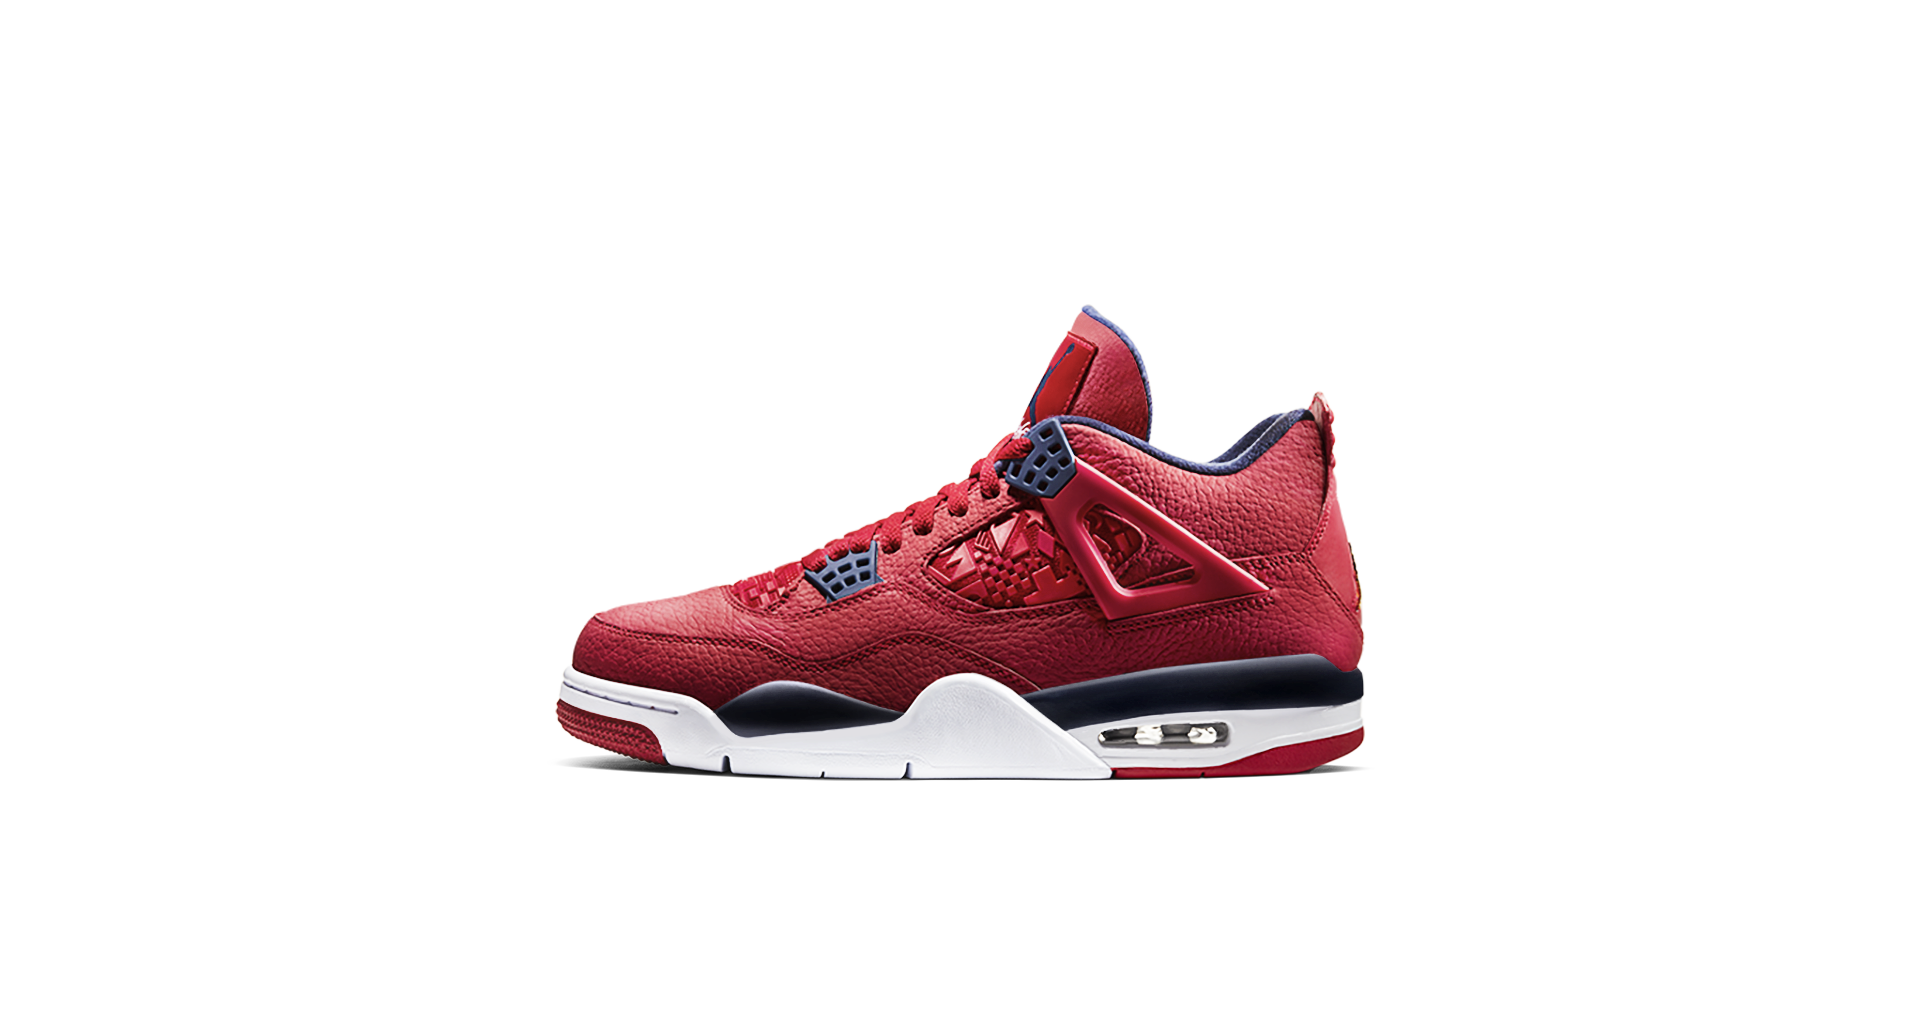 low priced 34fc8 f6373 Air Jordan IV Retro 'Gym Red' Release Date. Nike⁠+ SNKRS